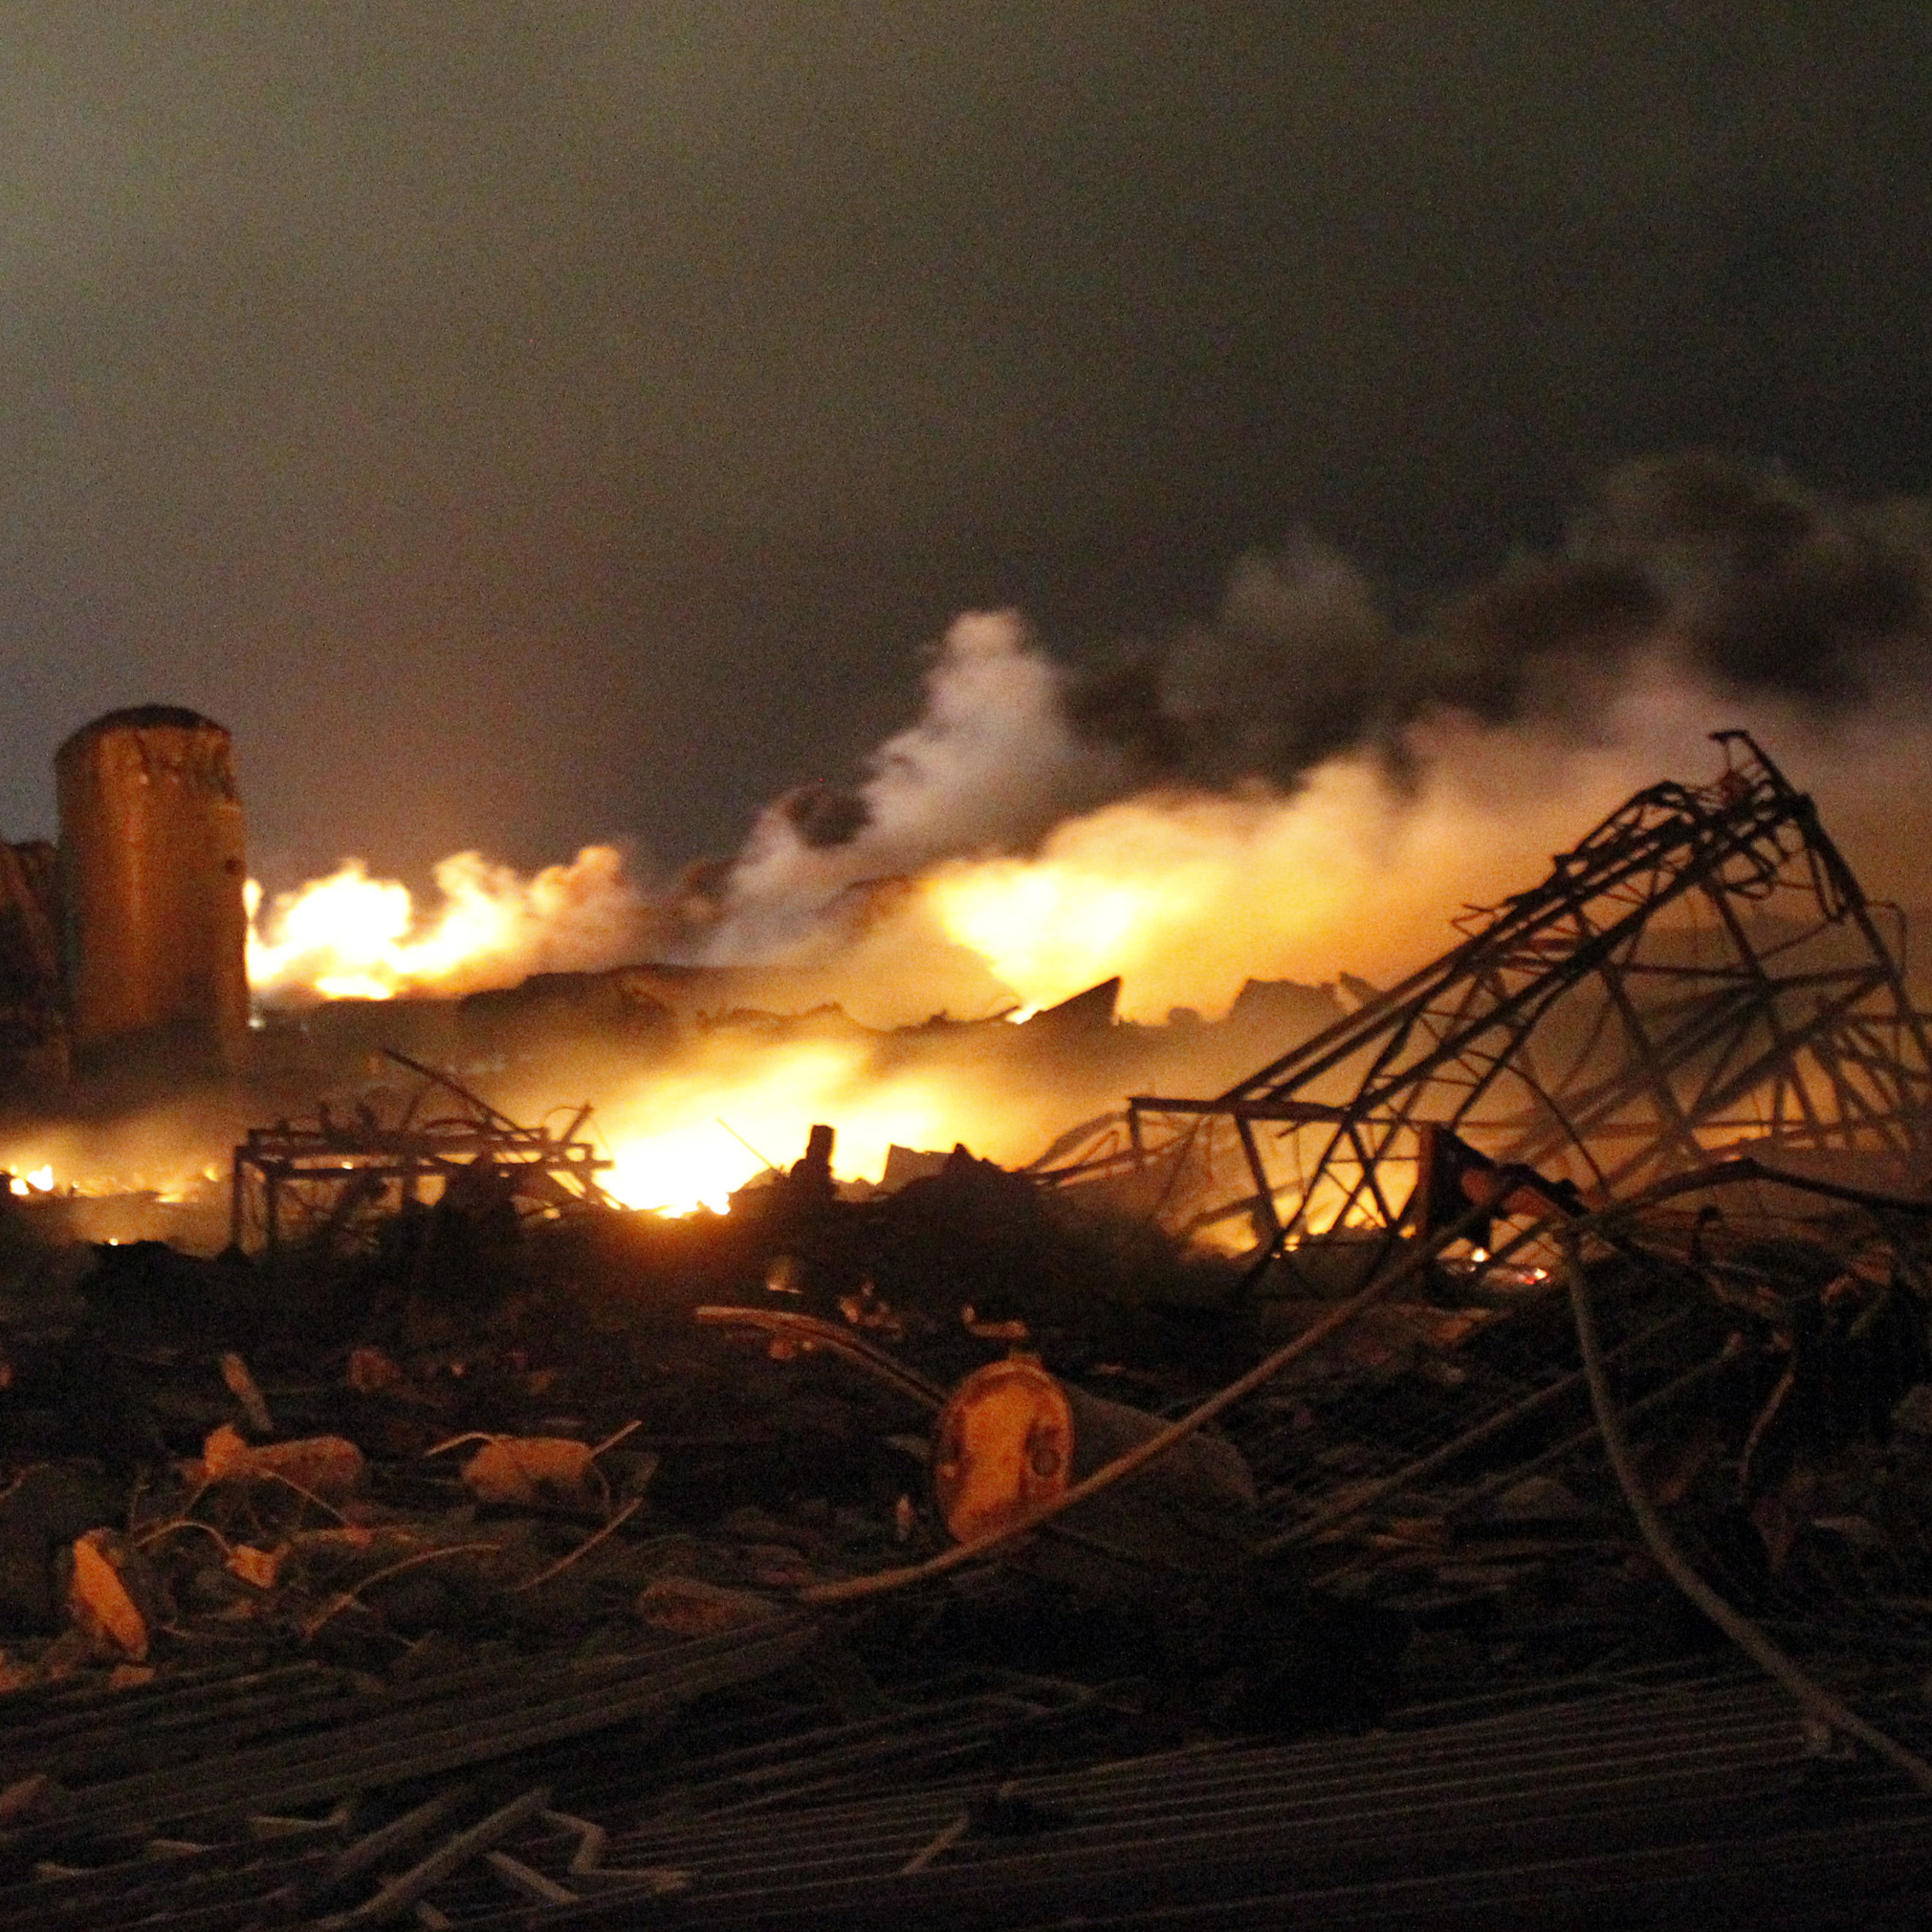 The remains of a fertilizer plant burn after an explosion at the plant in the town of West, Texas.